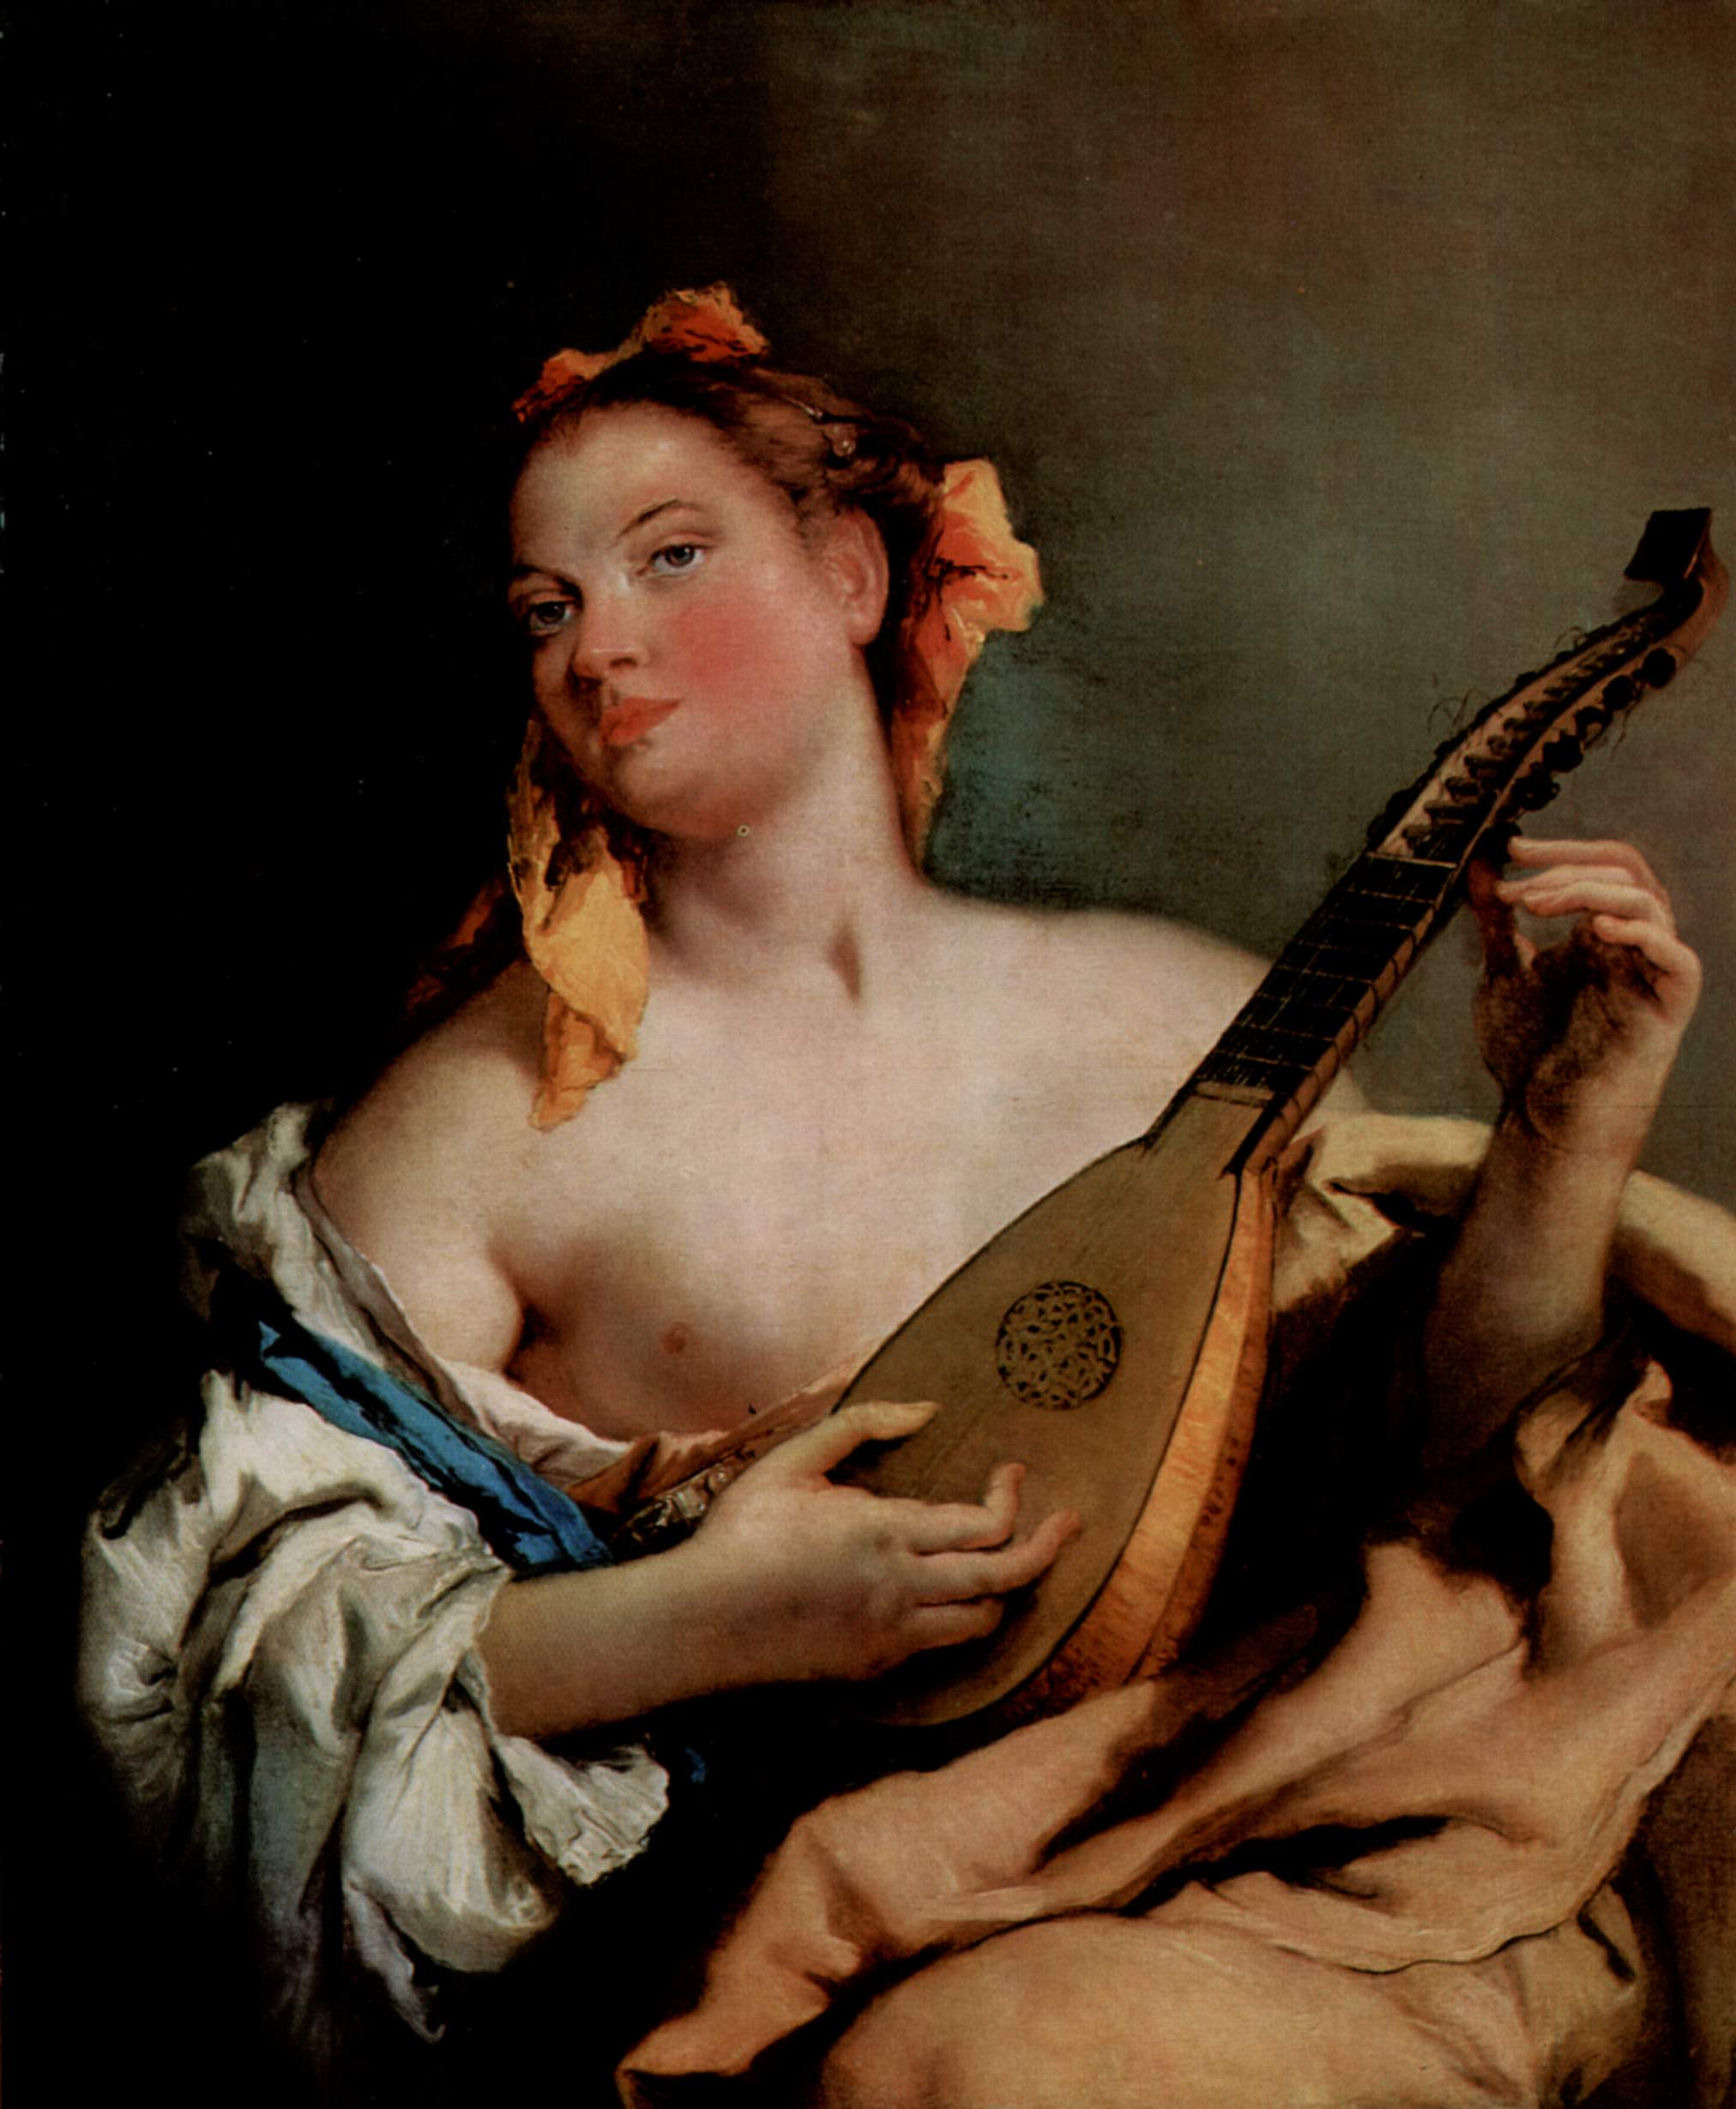 http://uploads7.wikipaintings.org/images/giovanni-battista-tiepolo/girl-with-a-mandolin.jpg